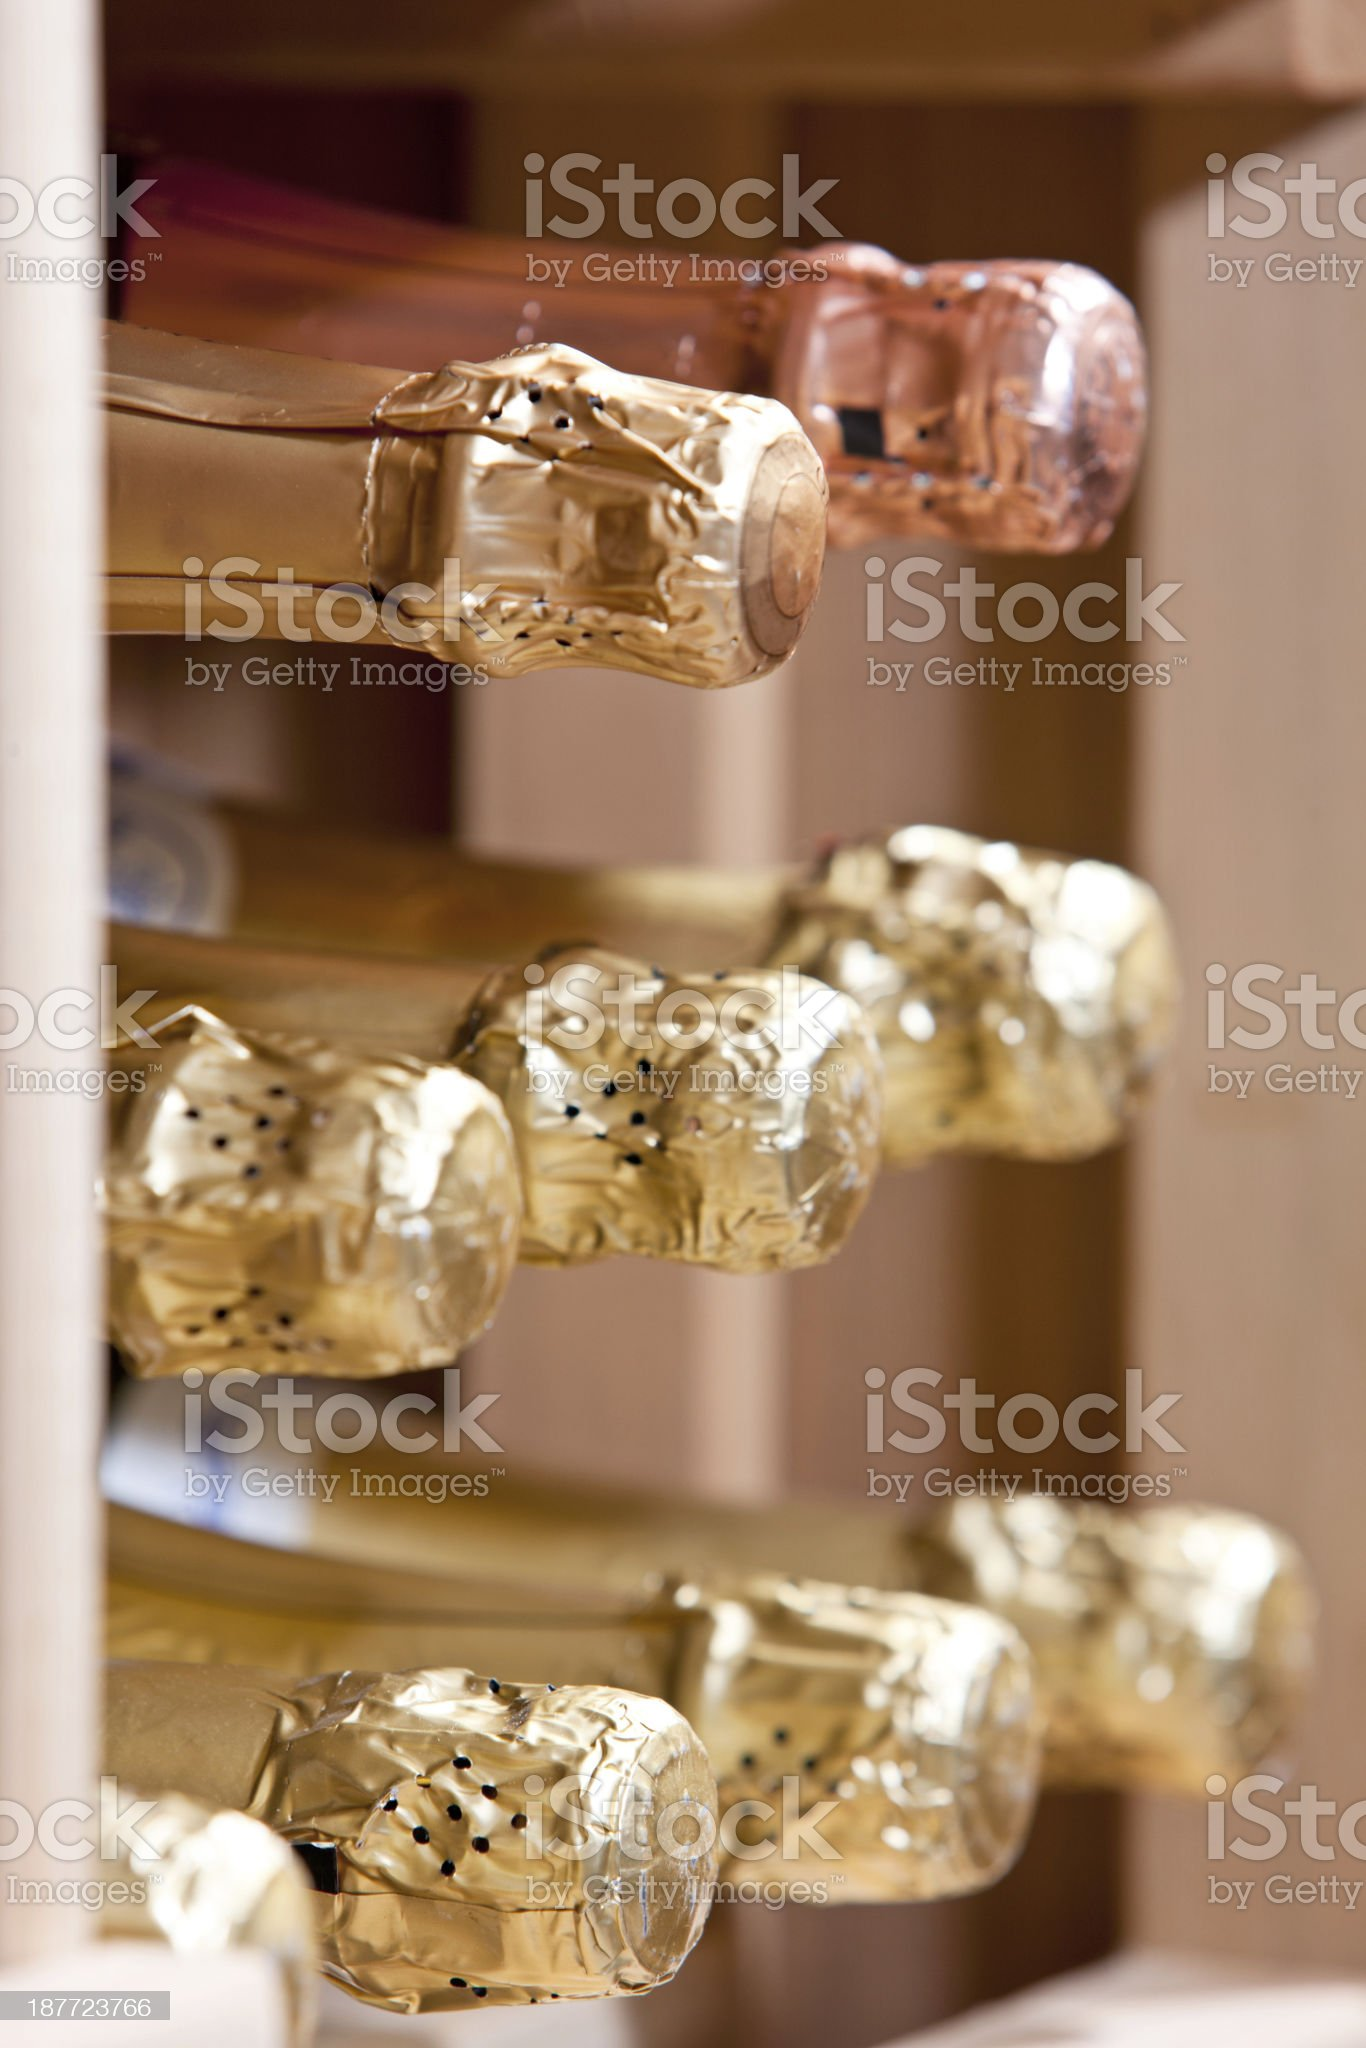 Champagne Bottles In Cellar royalty-free stock photo